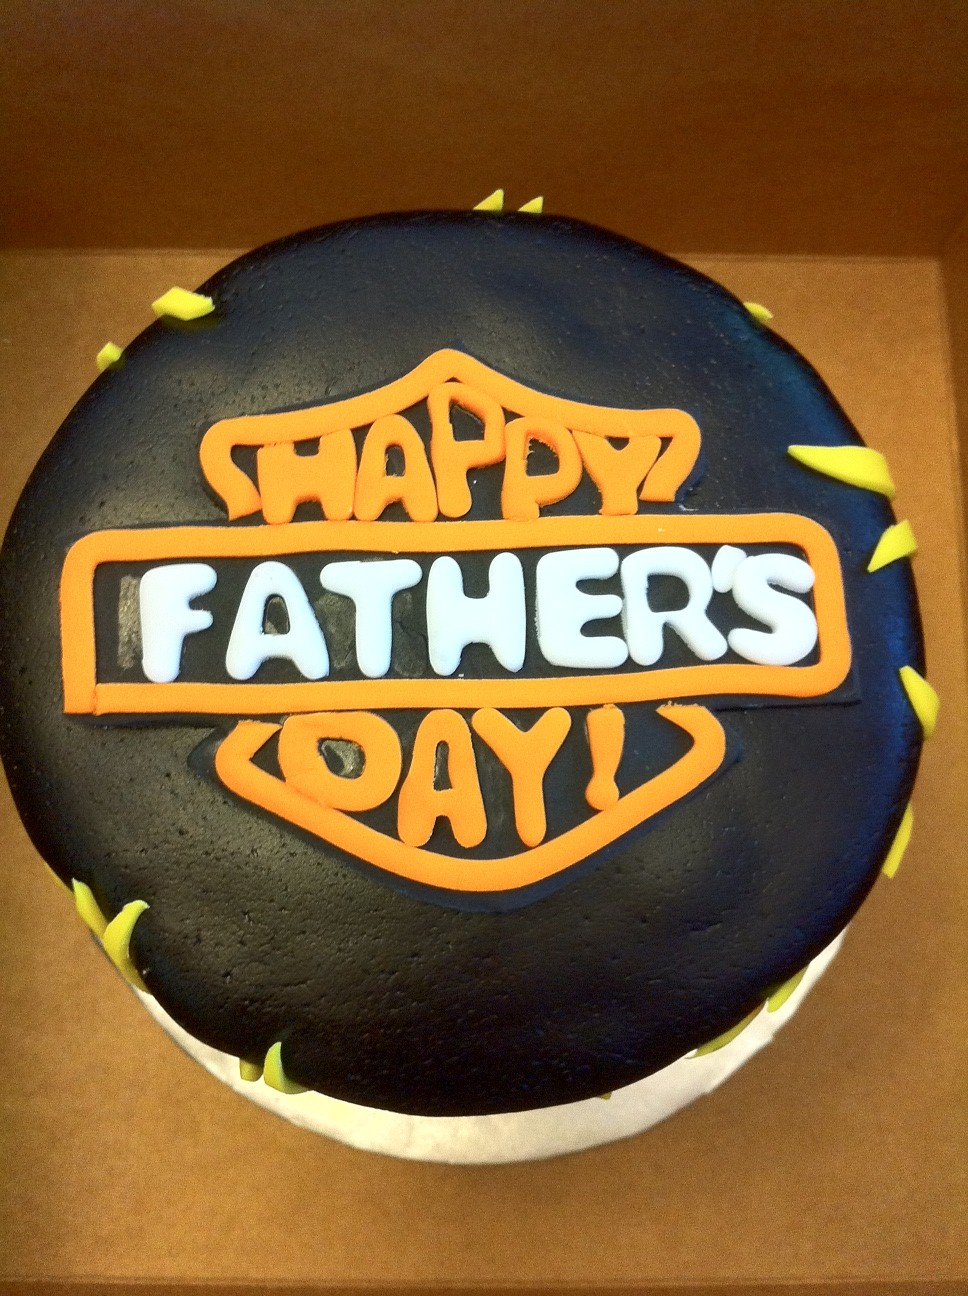 Harley Davidson Fathers Day Cake Top View